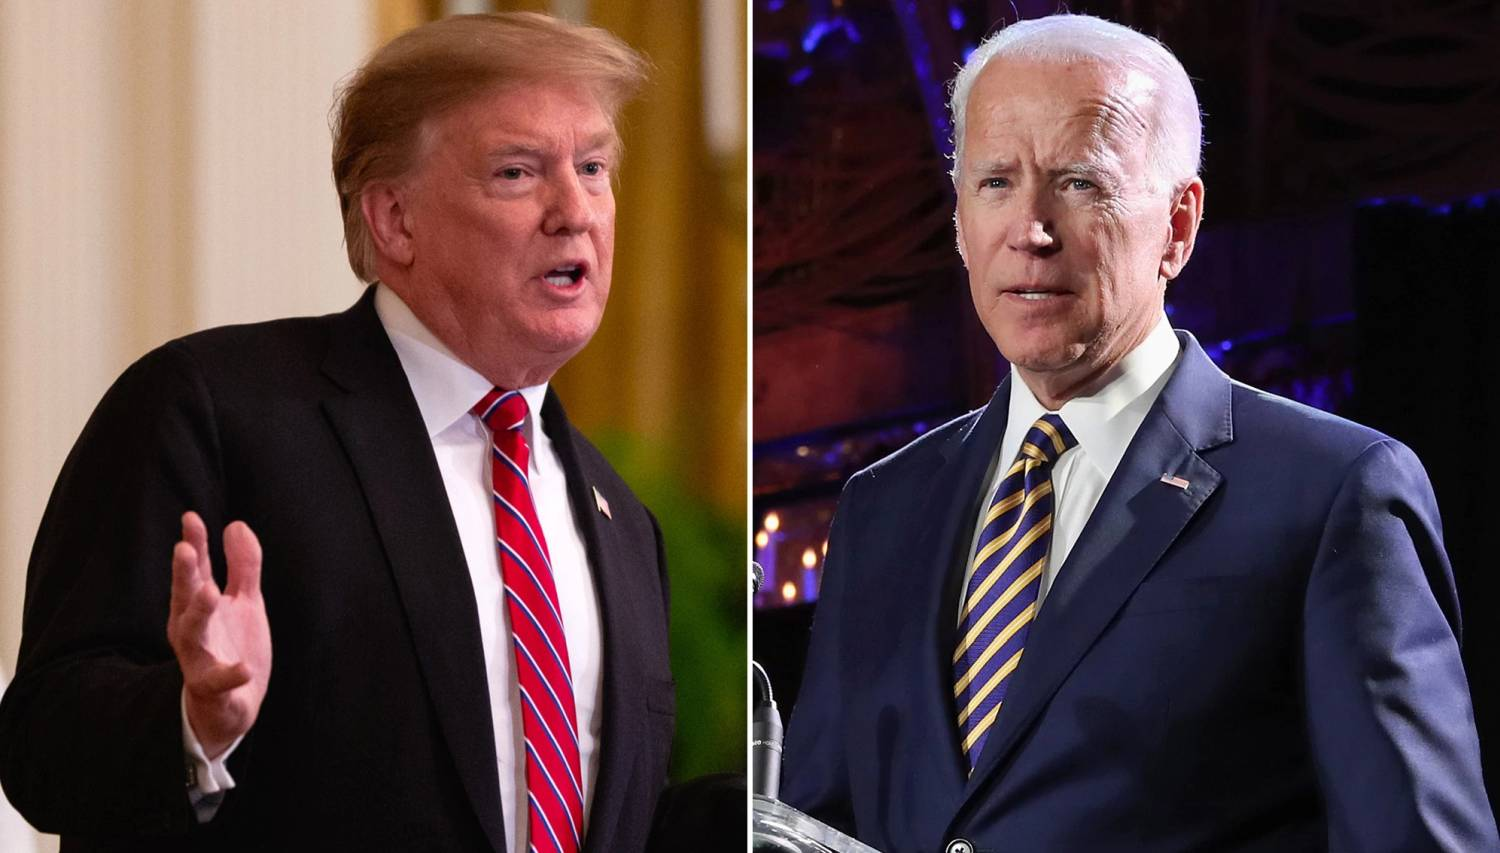 Biden Jokingly Challenges Trump to Push-up Challenge